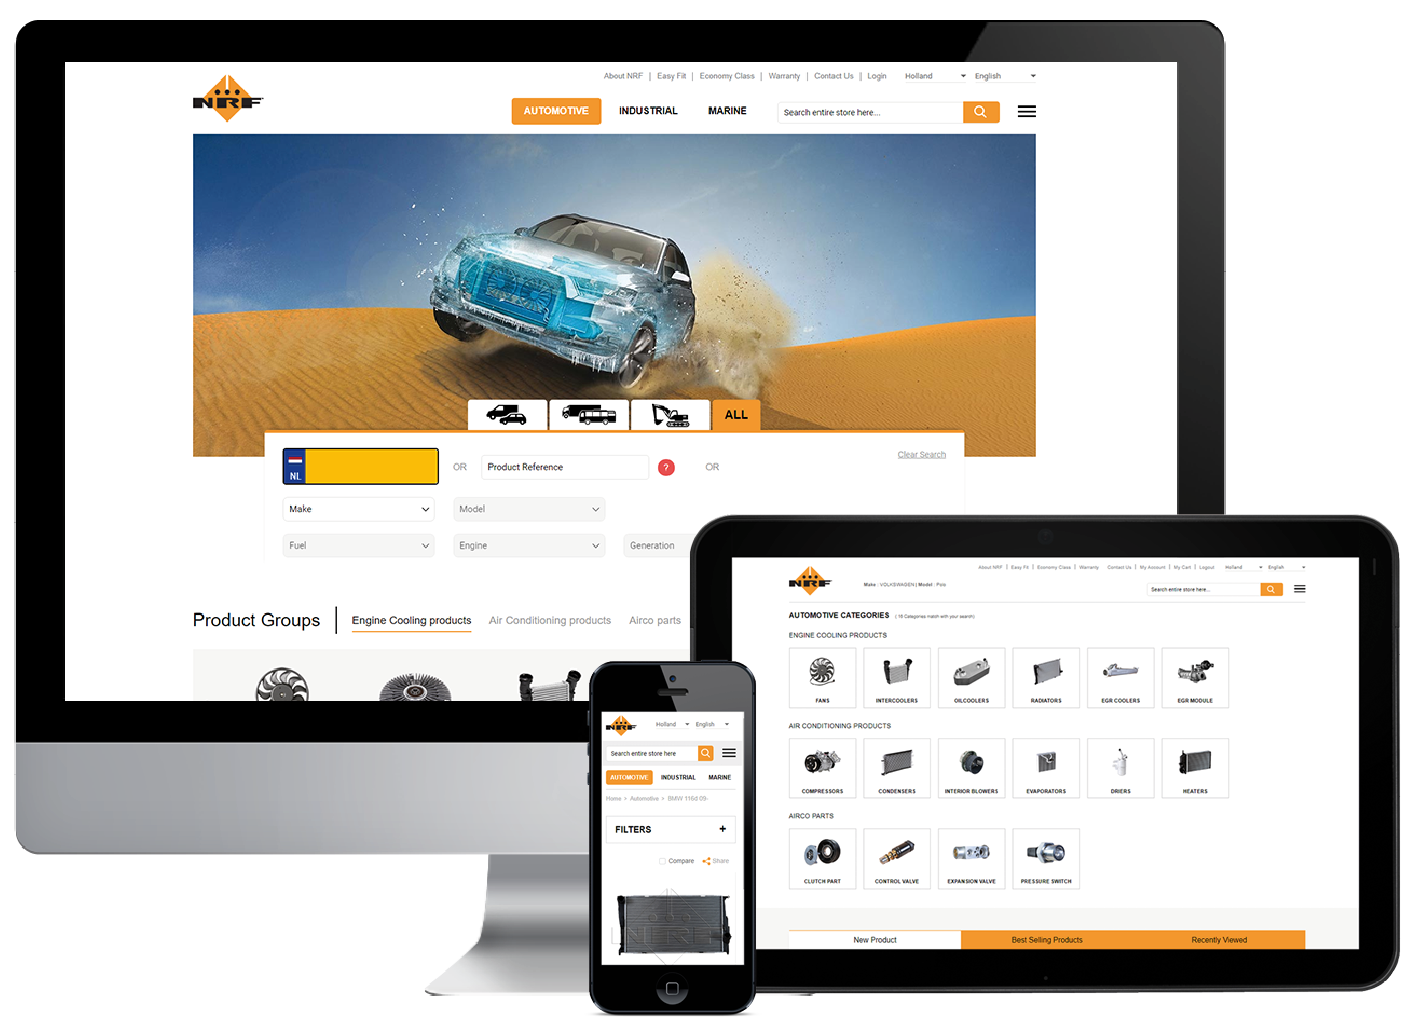 NRF Launches Unique Online E-Commerce Platform for Automotive Parts